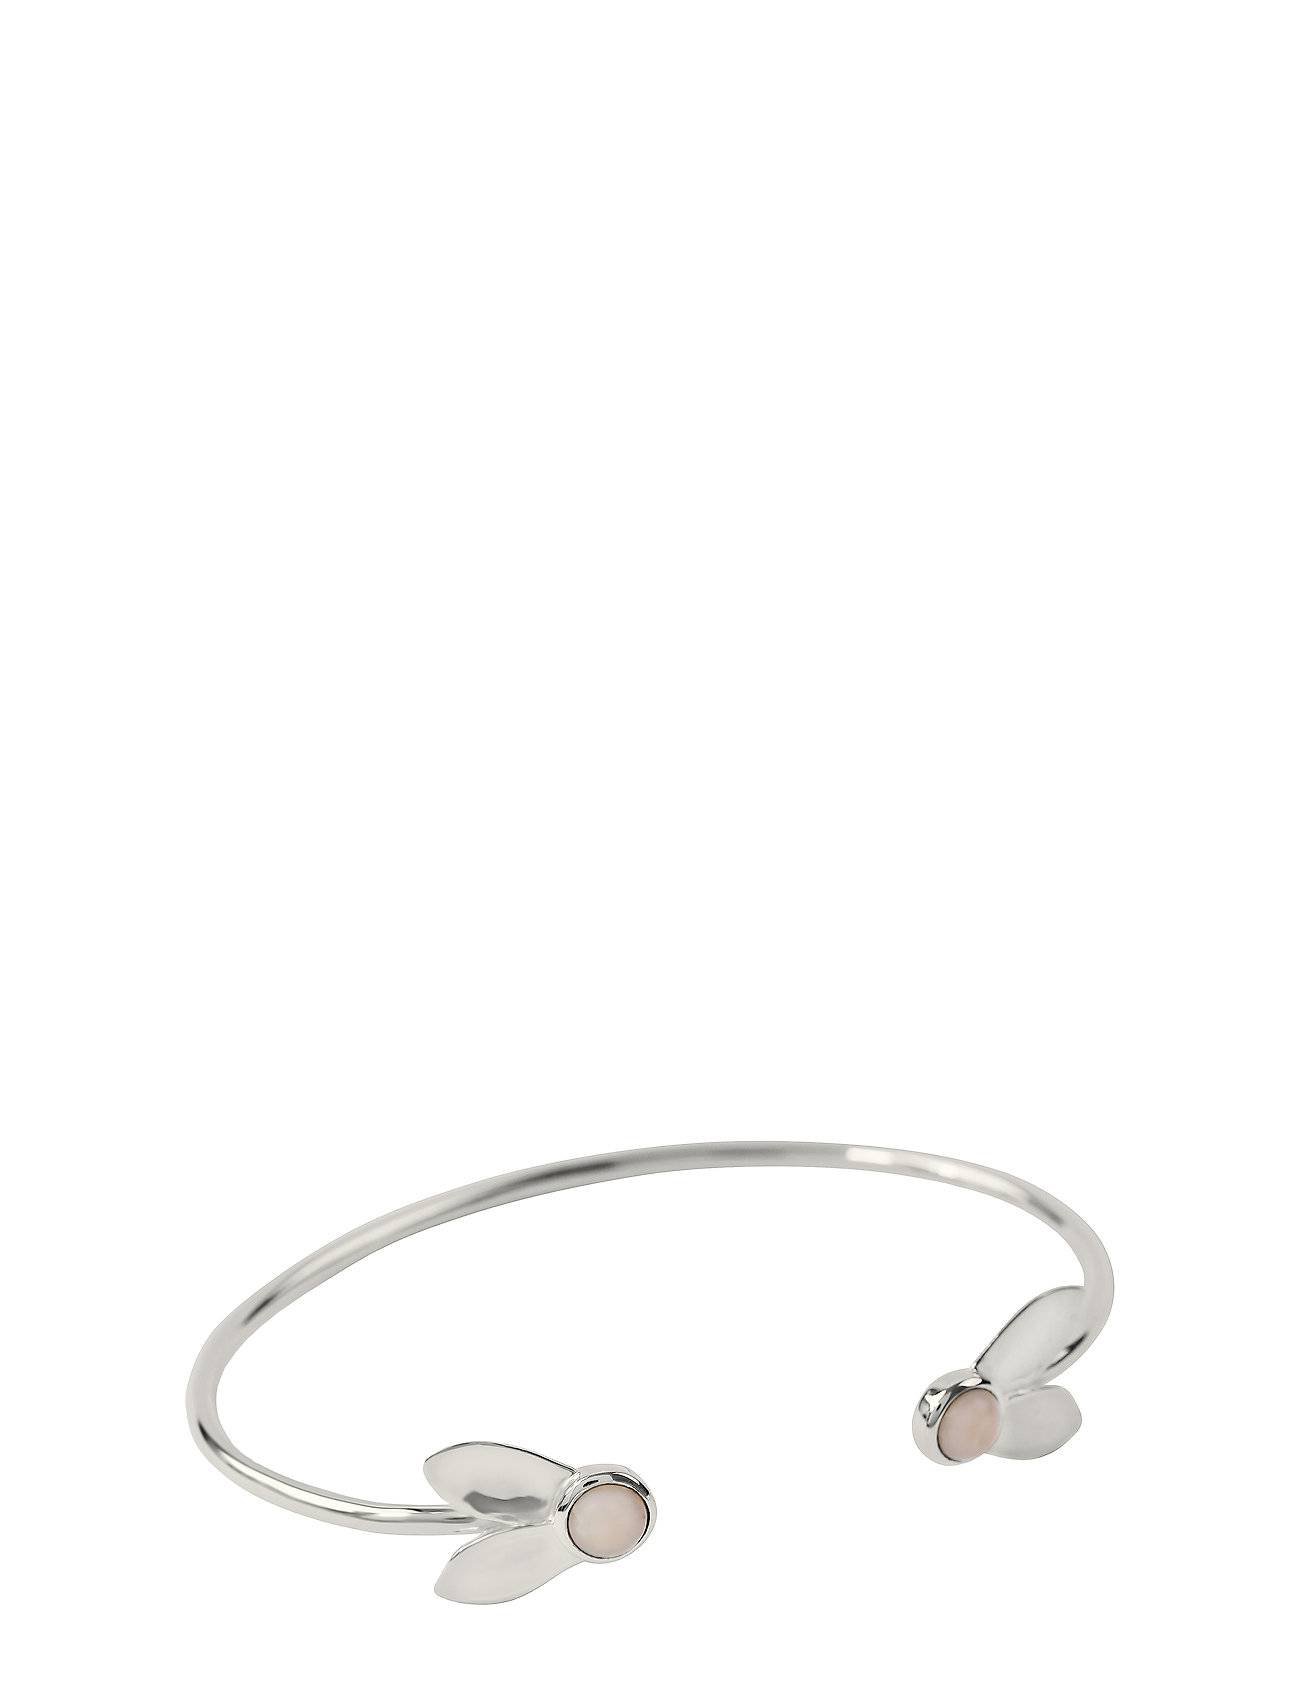 Syster P Flakes Bangle Silver Pink Opal Accessories Jewellery Bracelets Bangles Hopea Syster P